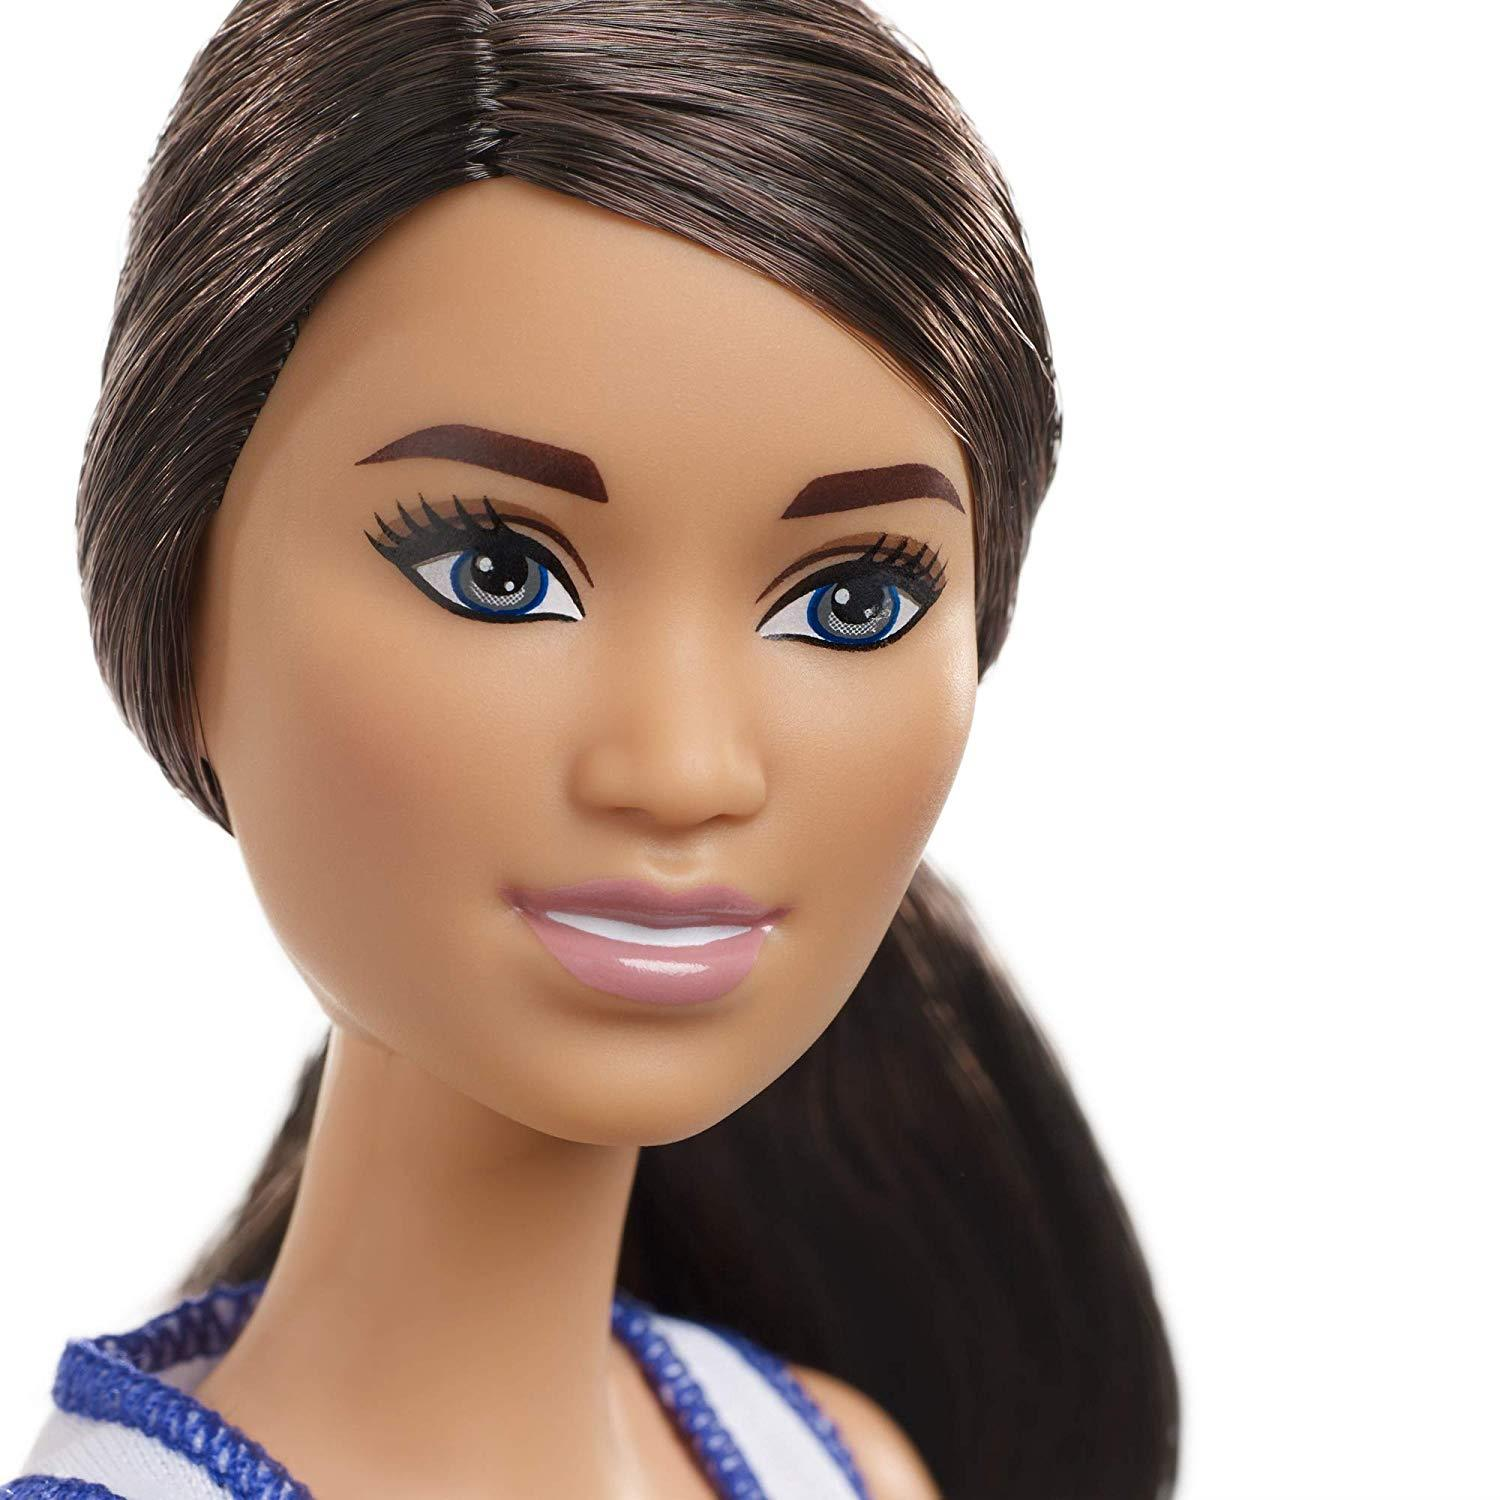 Barbie-Made-to-Move-Collectable-Careers-Fashion-Dolls thumbnail 9